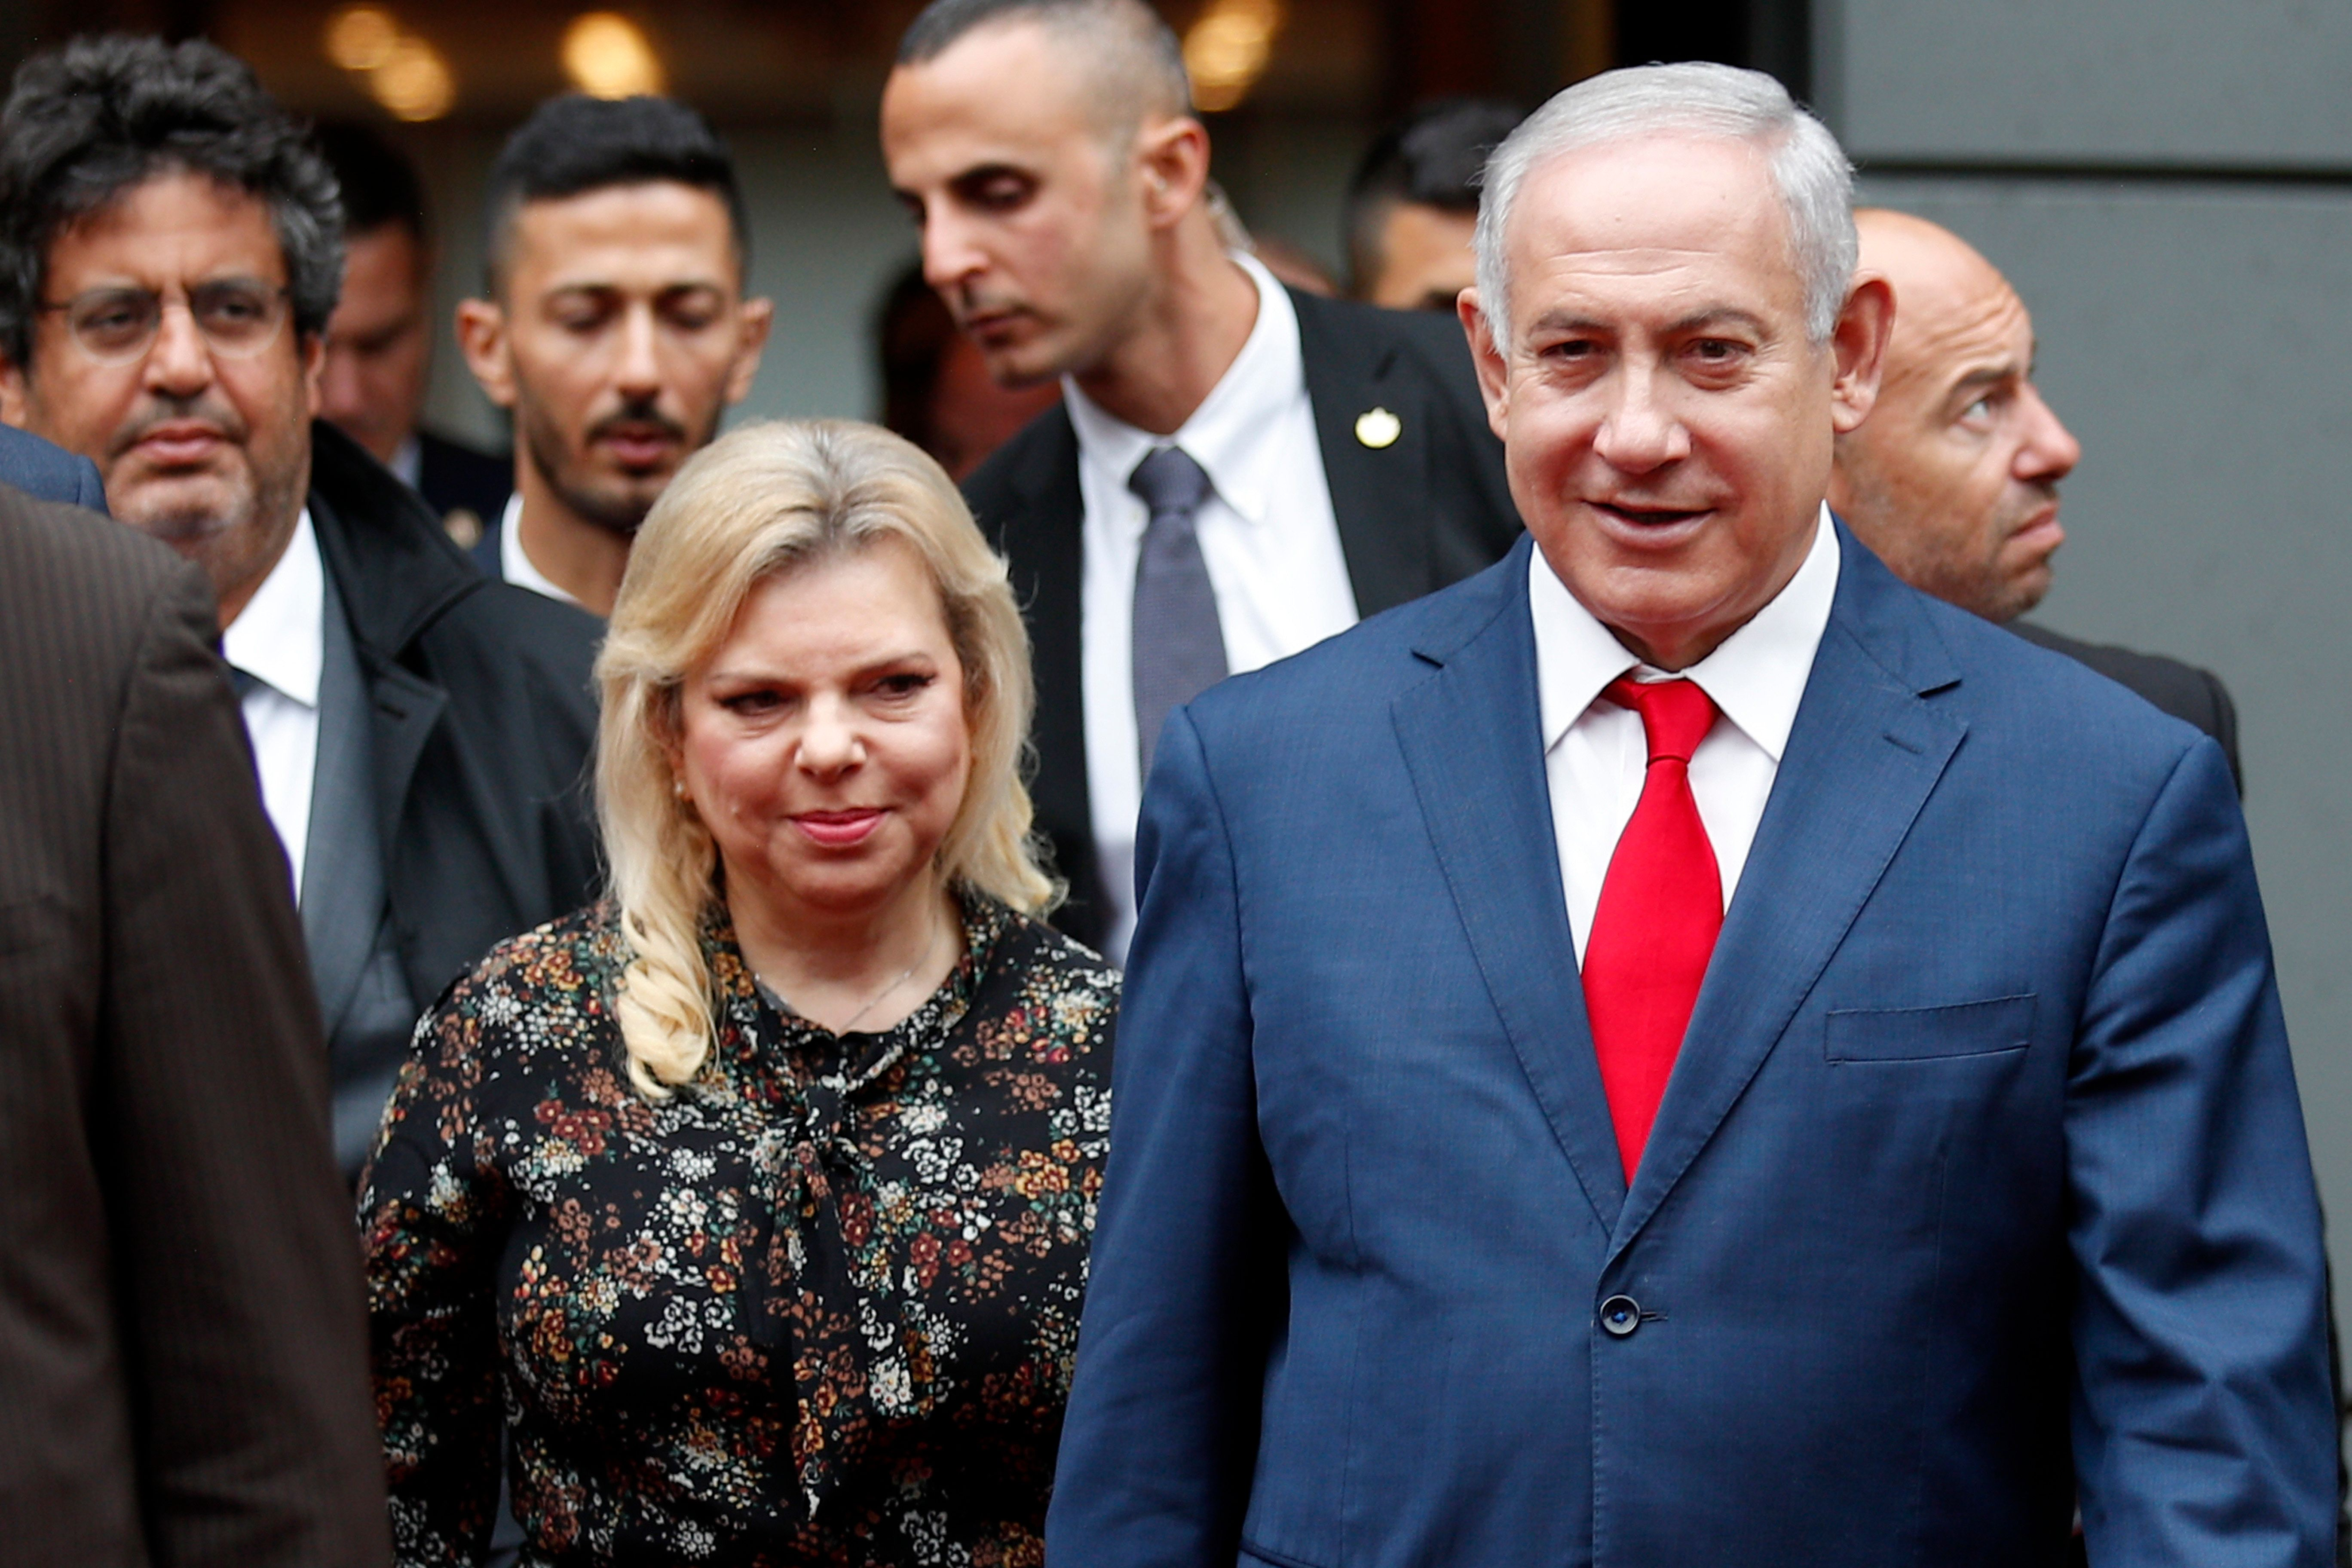 Israeli Police Recommend Netanyahu Be Charged With Bribery In Telecom